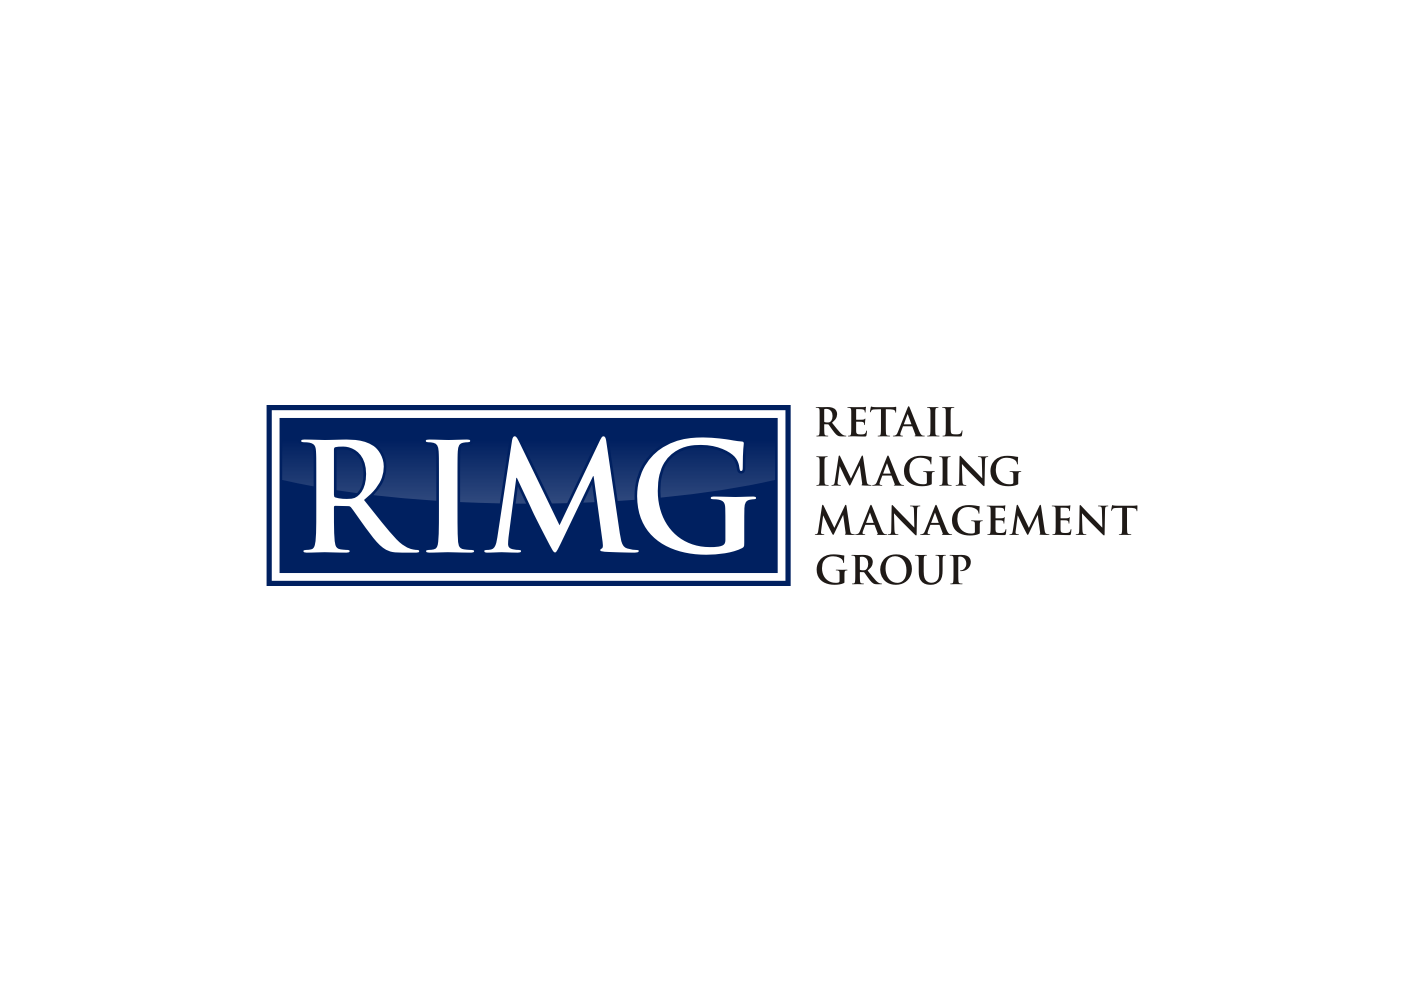 Logo Design by Ekarini Puspitasari - Entry No. 9 in the Logo Design Contest Creative Logo Design for Retail Imaging Management Group (R.I.M.G.).